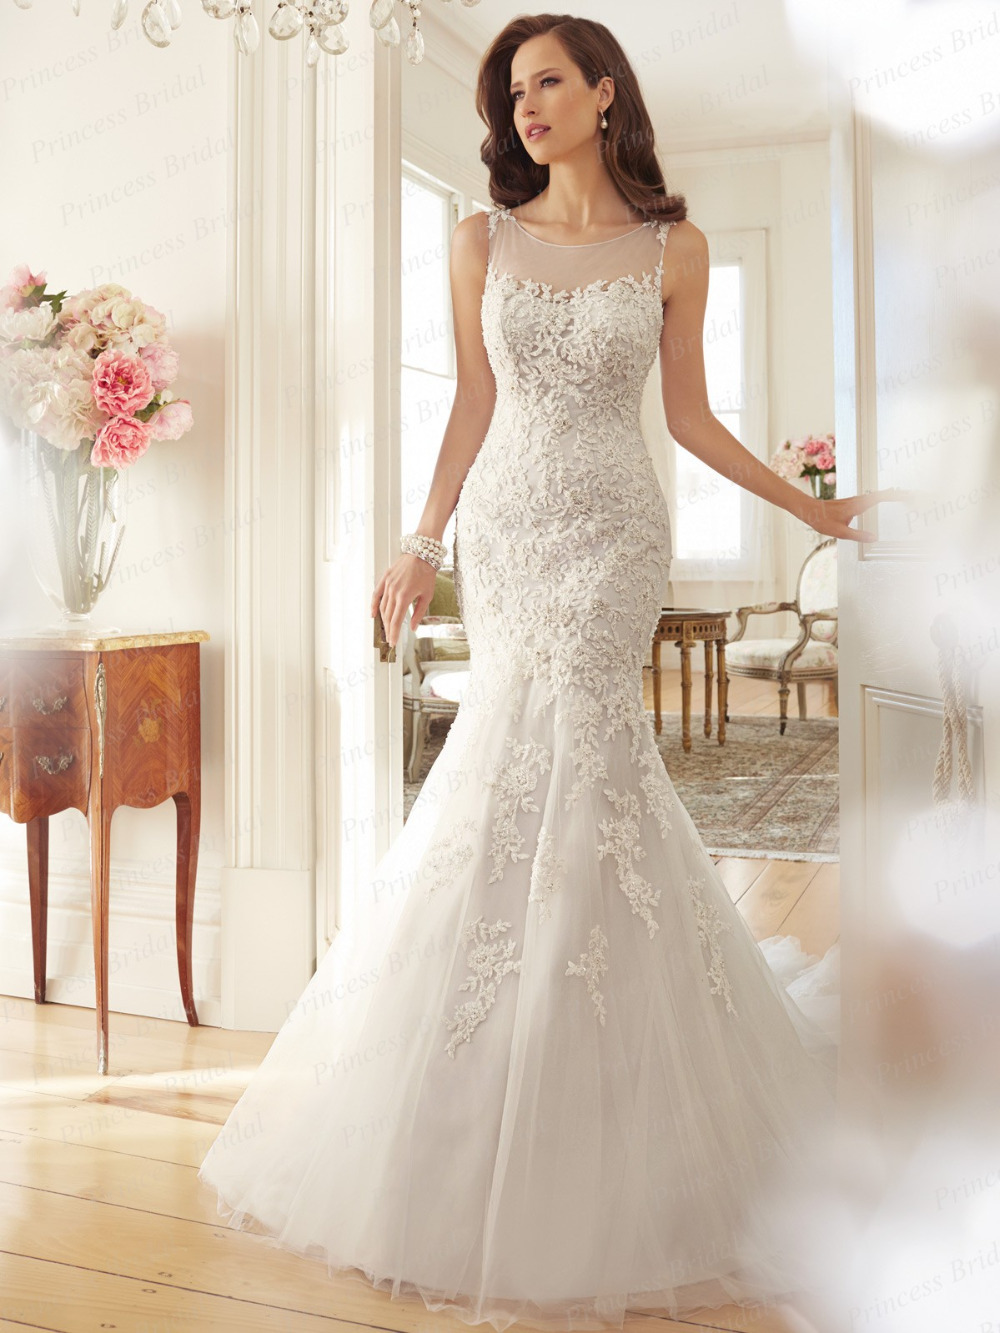 Wedding Fairytale Wedding Dresses online buy wholesale fairytale wedding dresses from china free shipping see through trumpet bateau neck sleeveless sweep train tullenetting dress